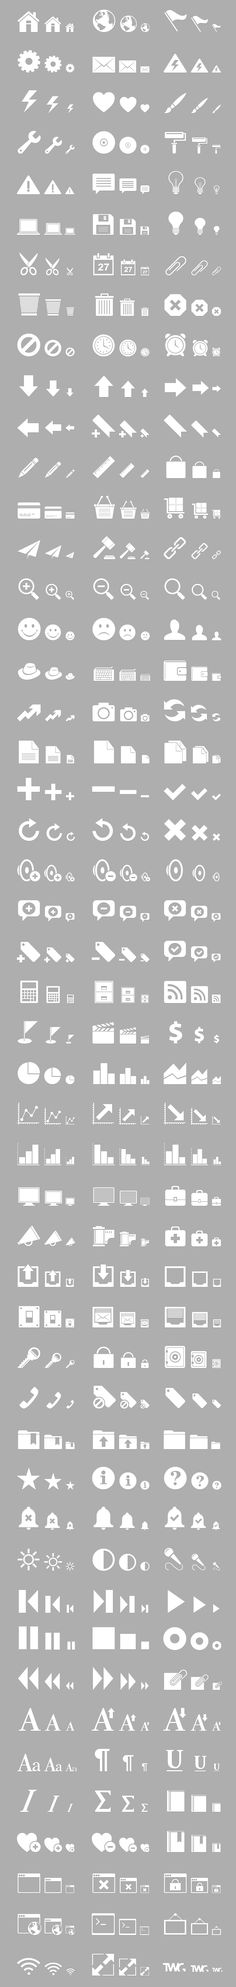 Retina Display Free Icon Set